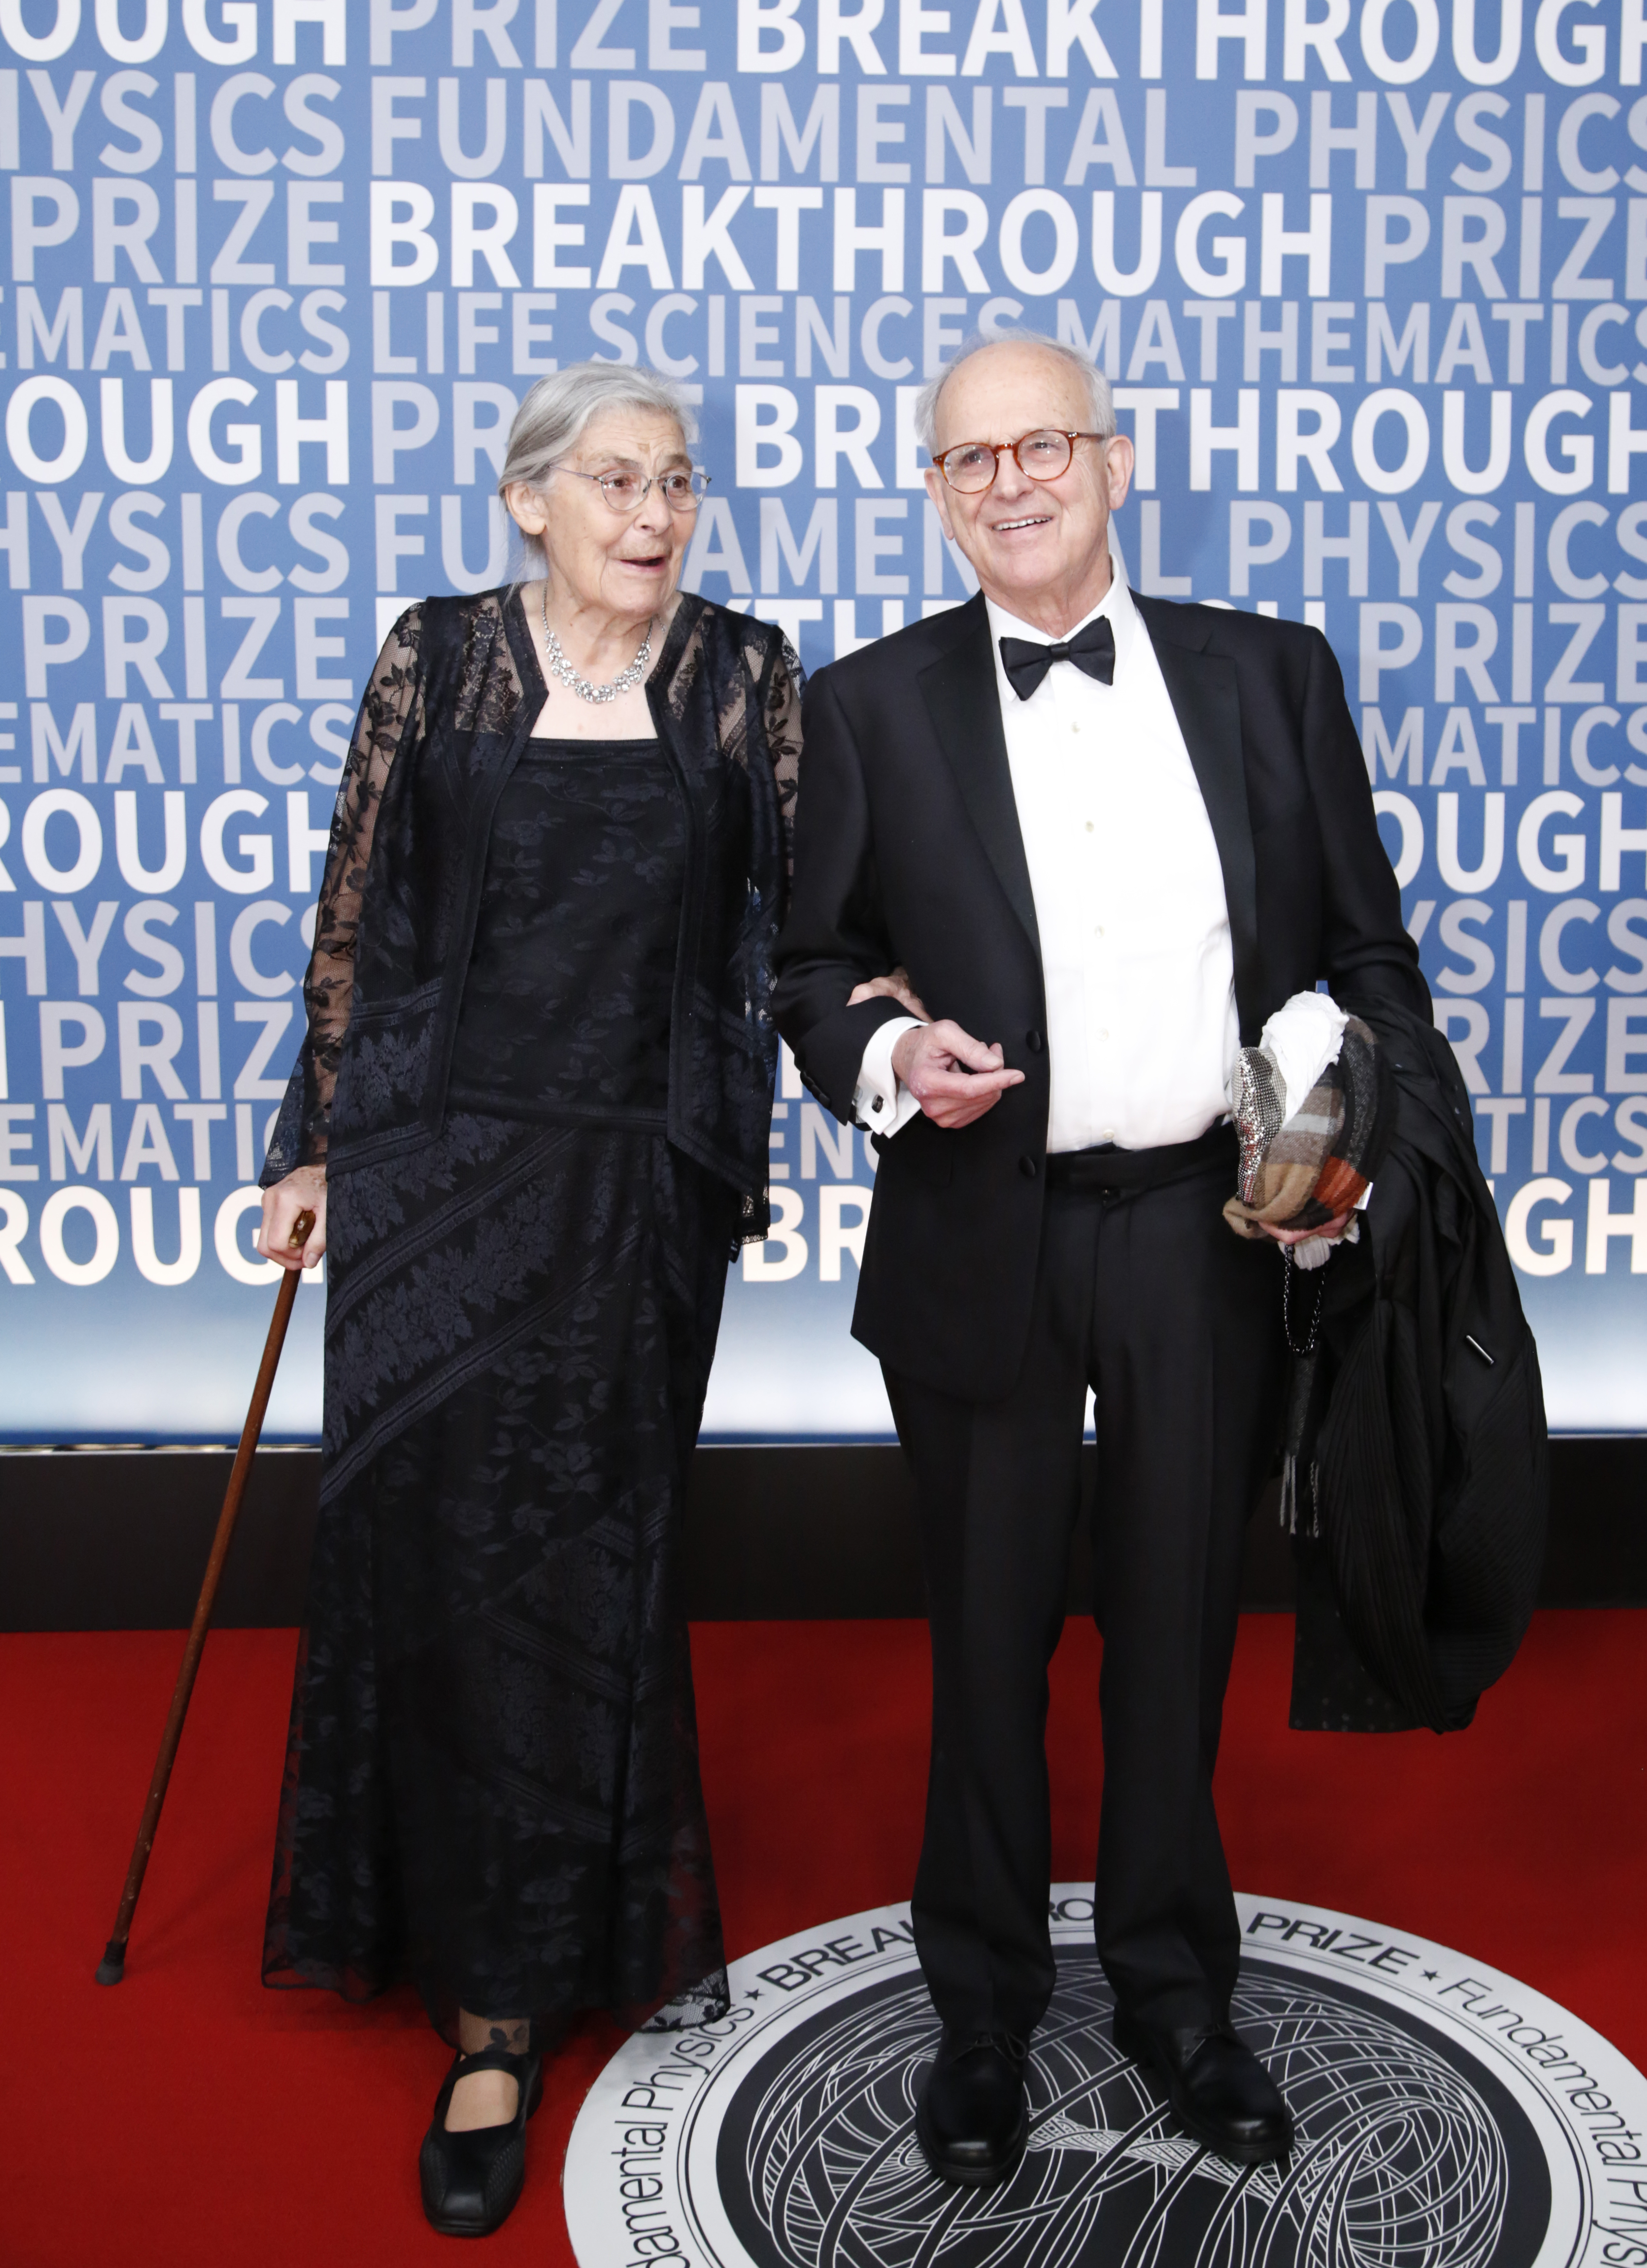 Rebecca and Dr. Rainer Weiss attend the 2017 Breakthrough Prize at NASA Ames Research Center.